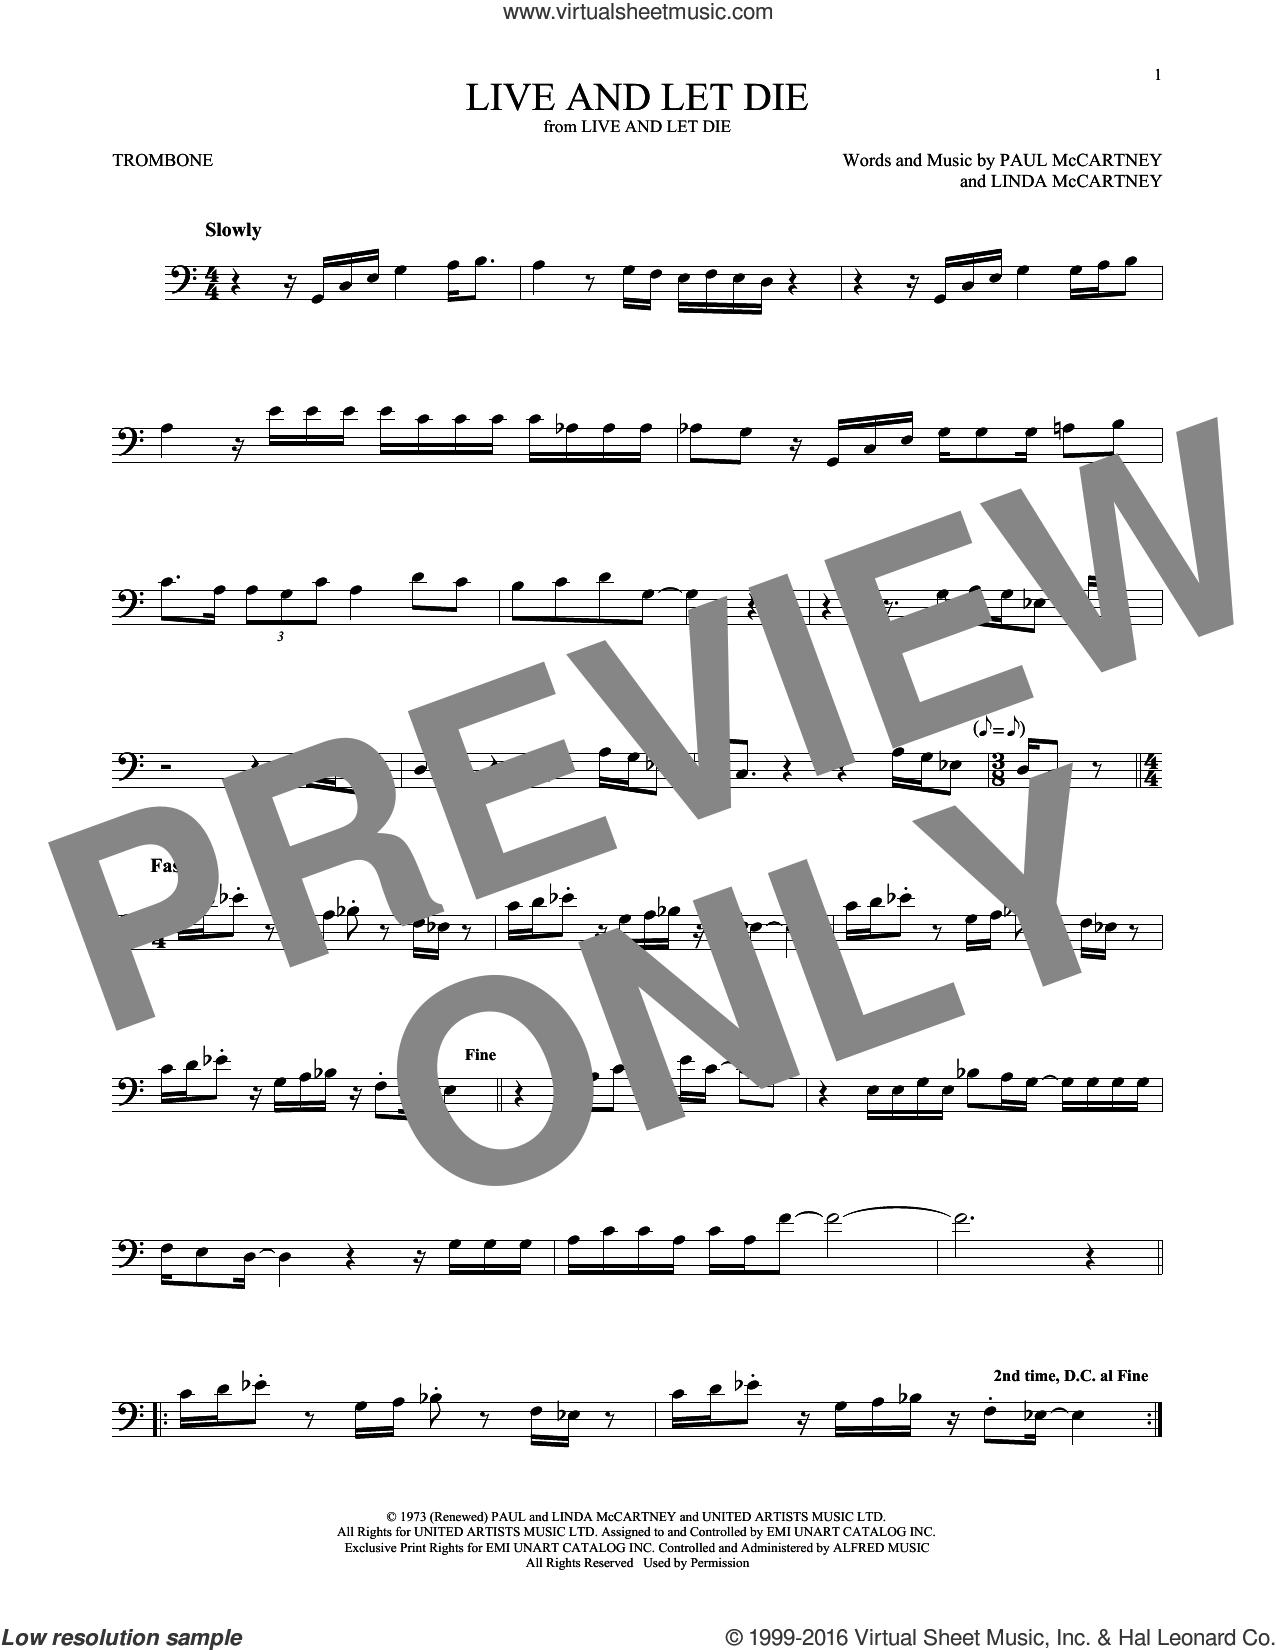 Live And Let Die sheet music for trombone solo by Wings, Linda McCartney and Paul McCartney, intermediate skill level